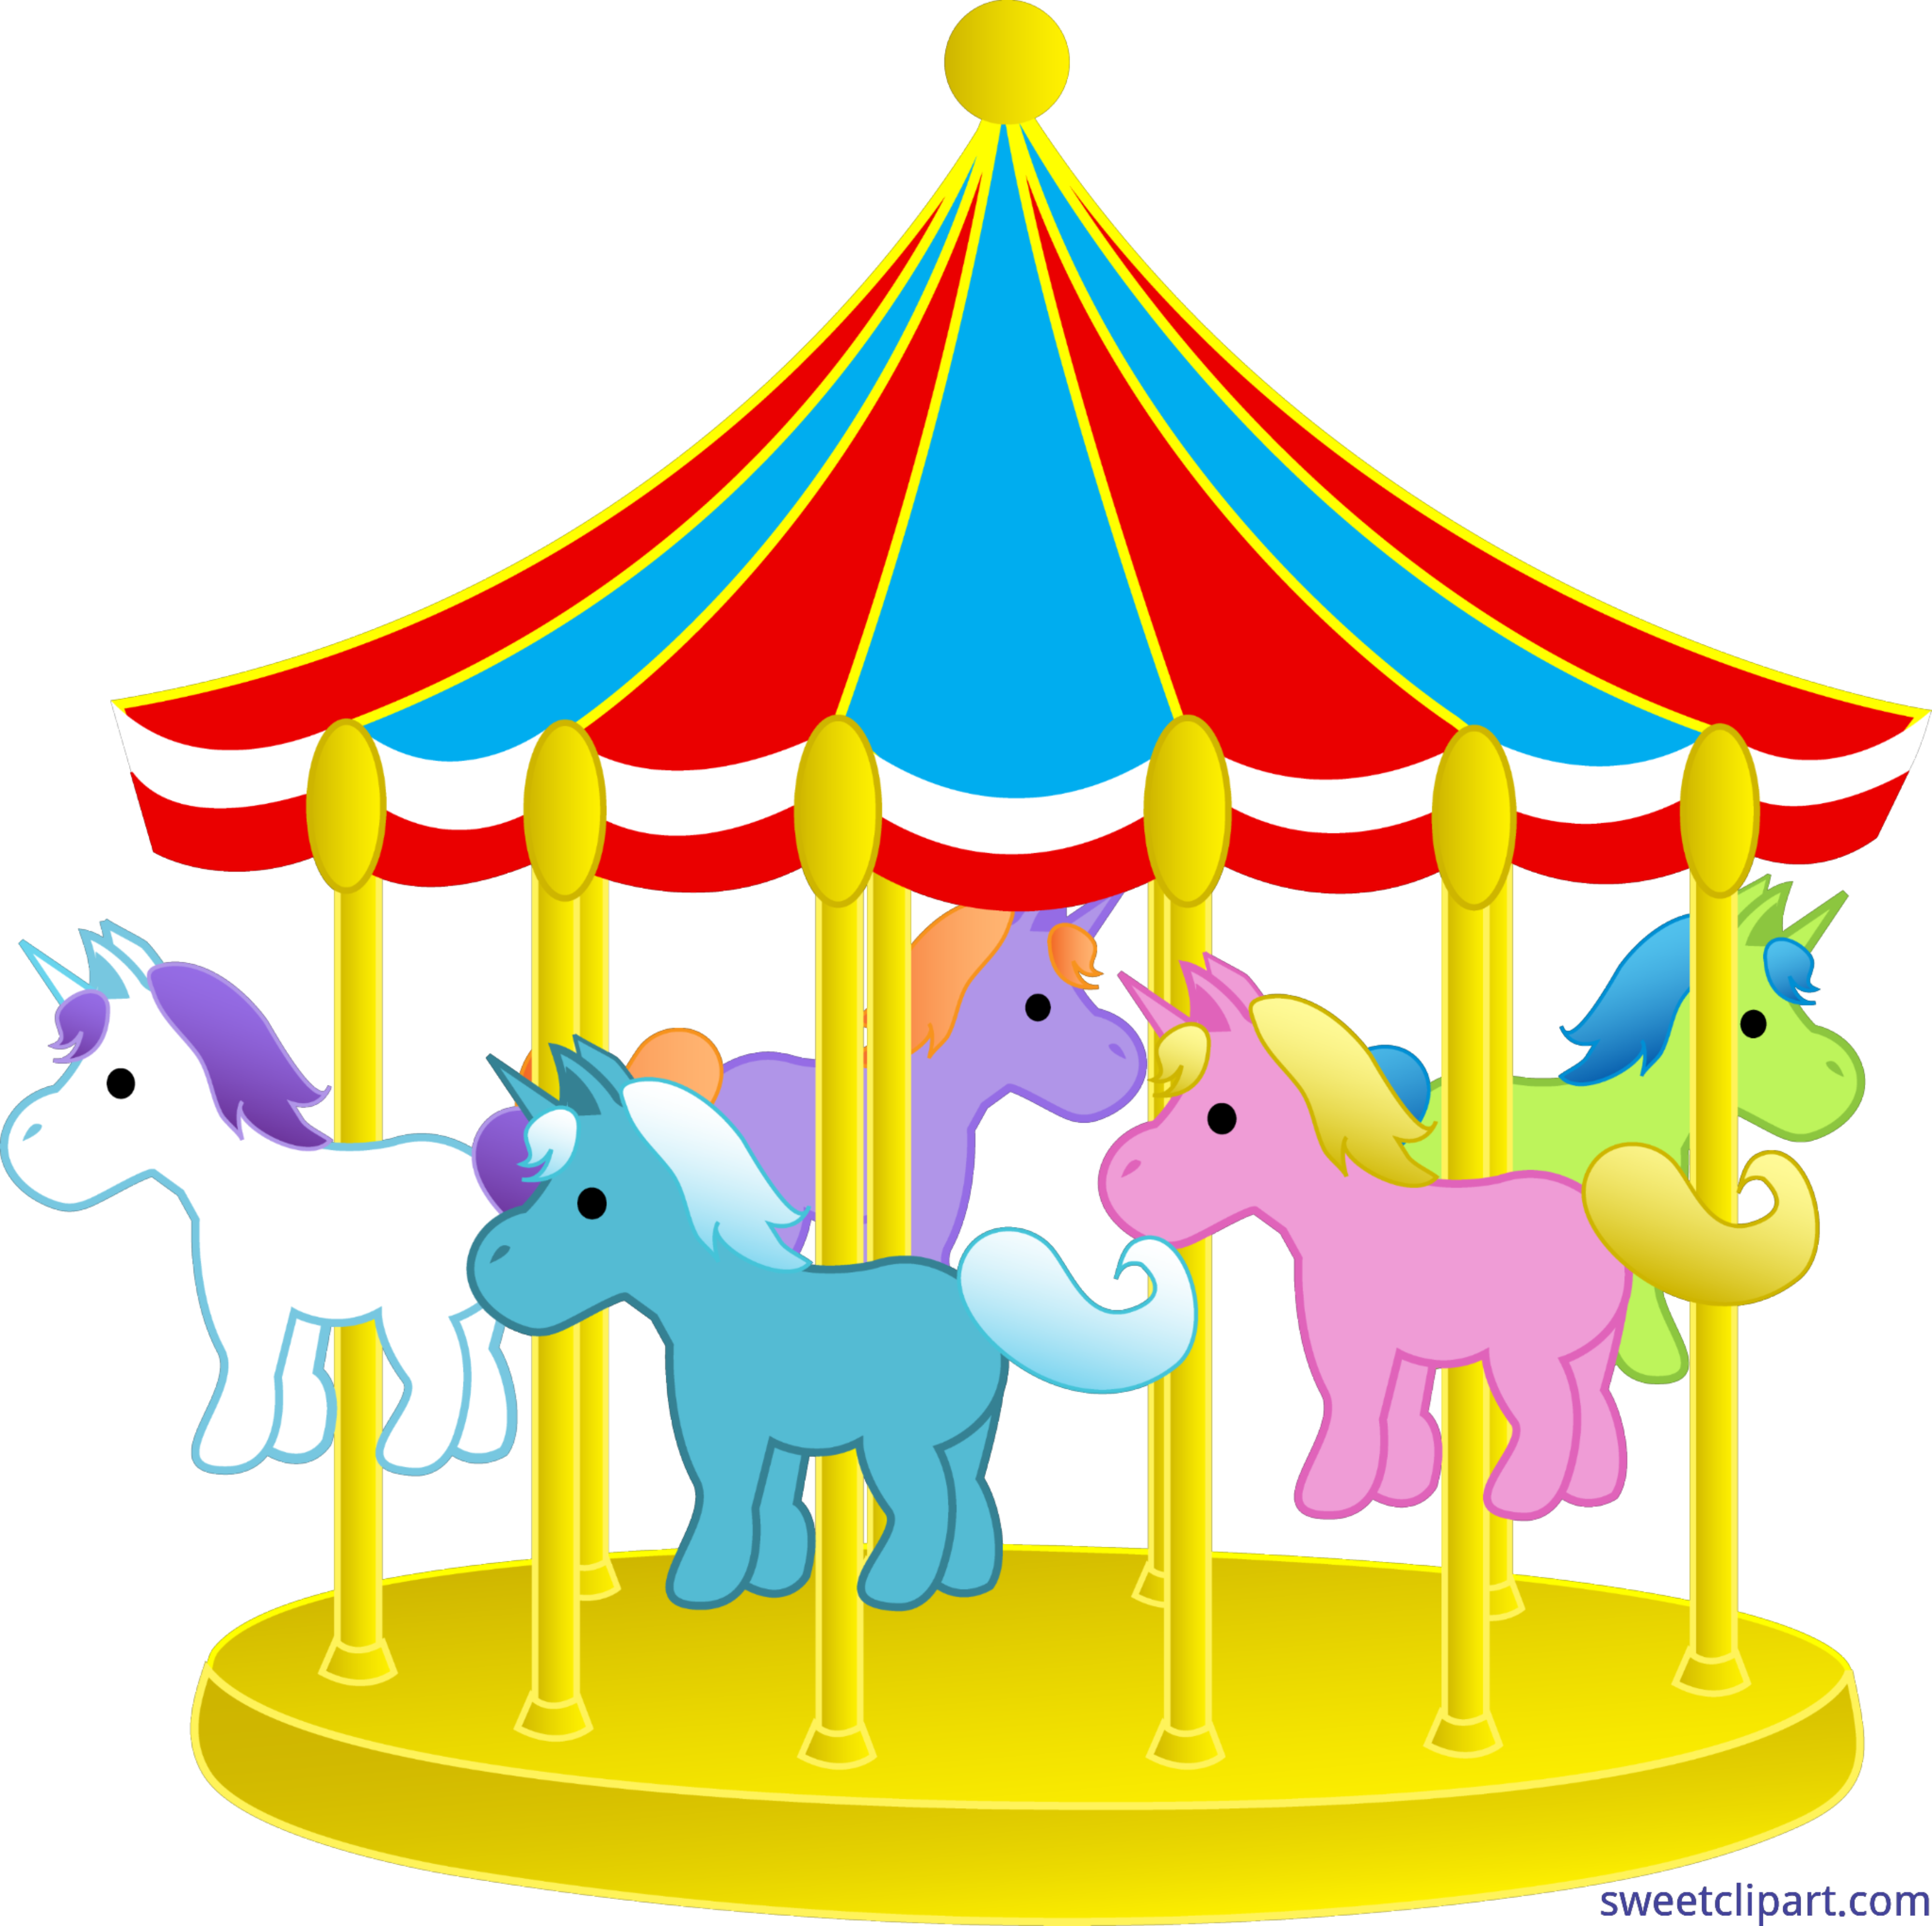 banner transparent library Objects Carnival Carousel